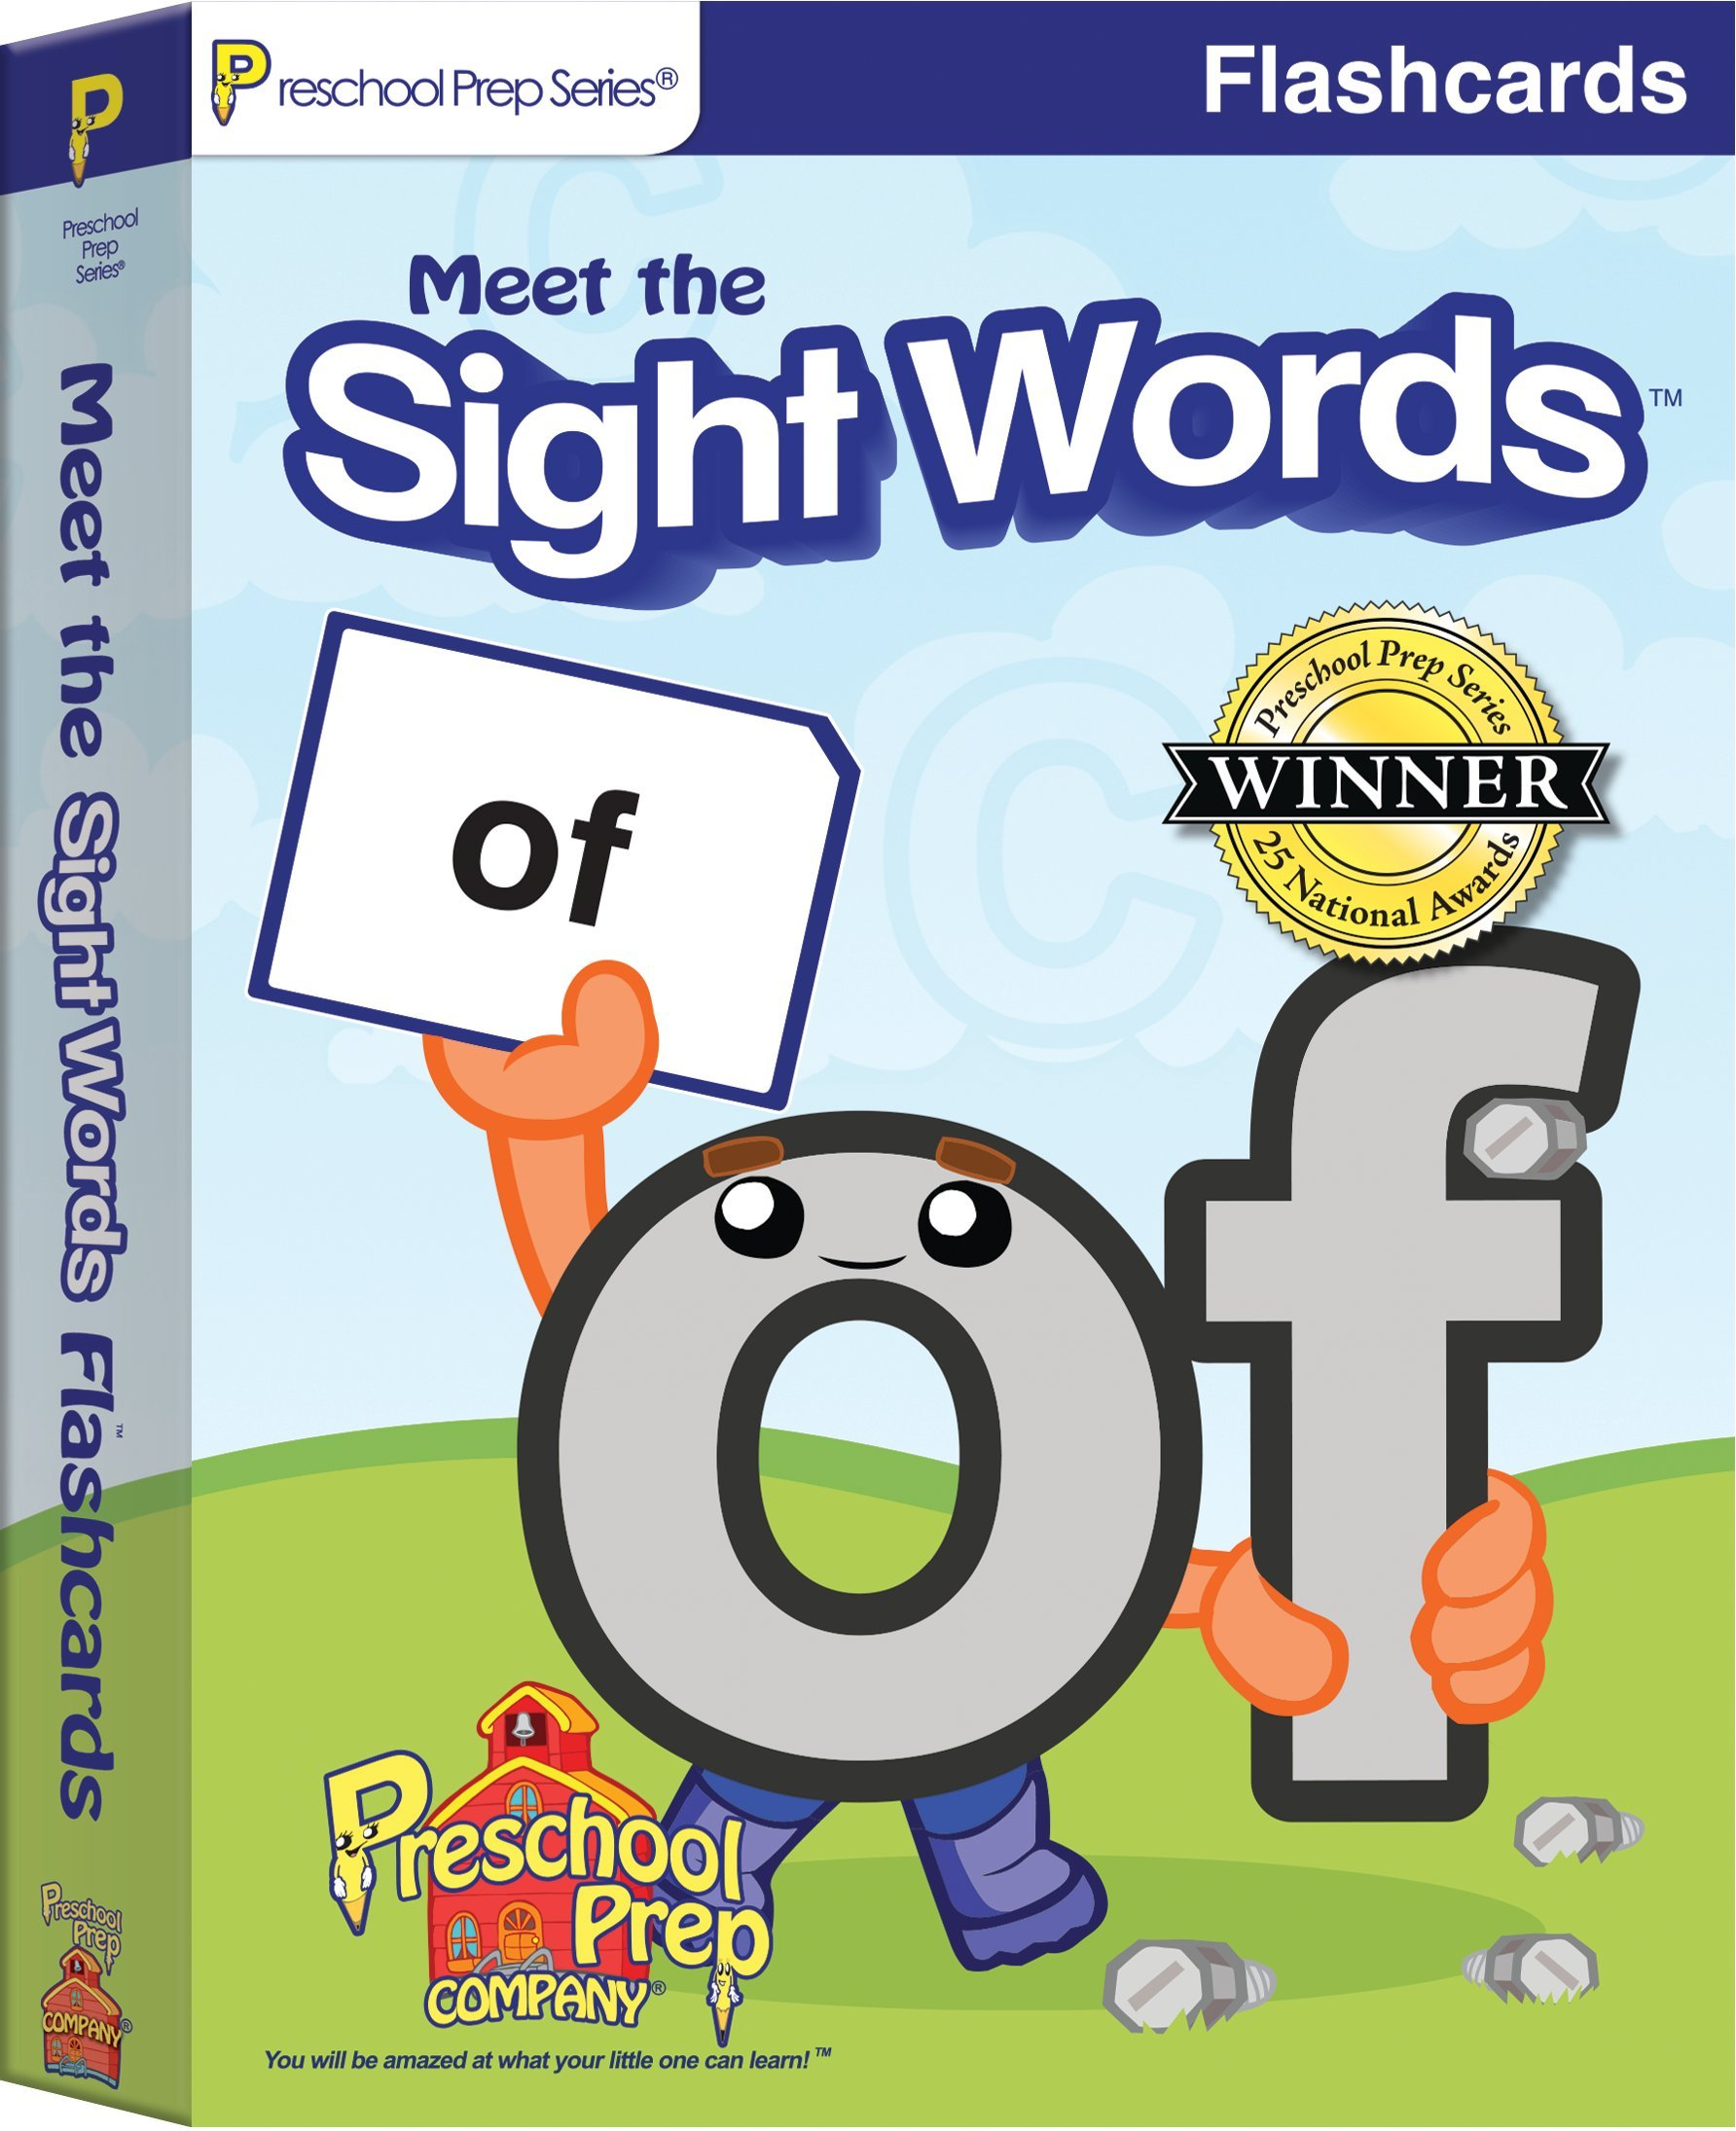 worksheet Sight Words Flash Cards meet the sight words flashcards kathy oxley sherwin rosario rosarionicholas trujillo 0184582000310 amazon com books